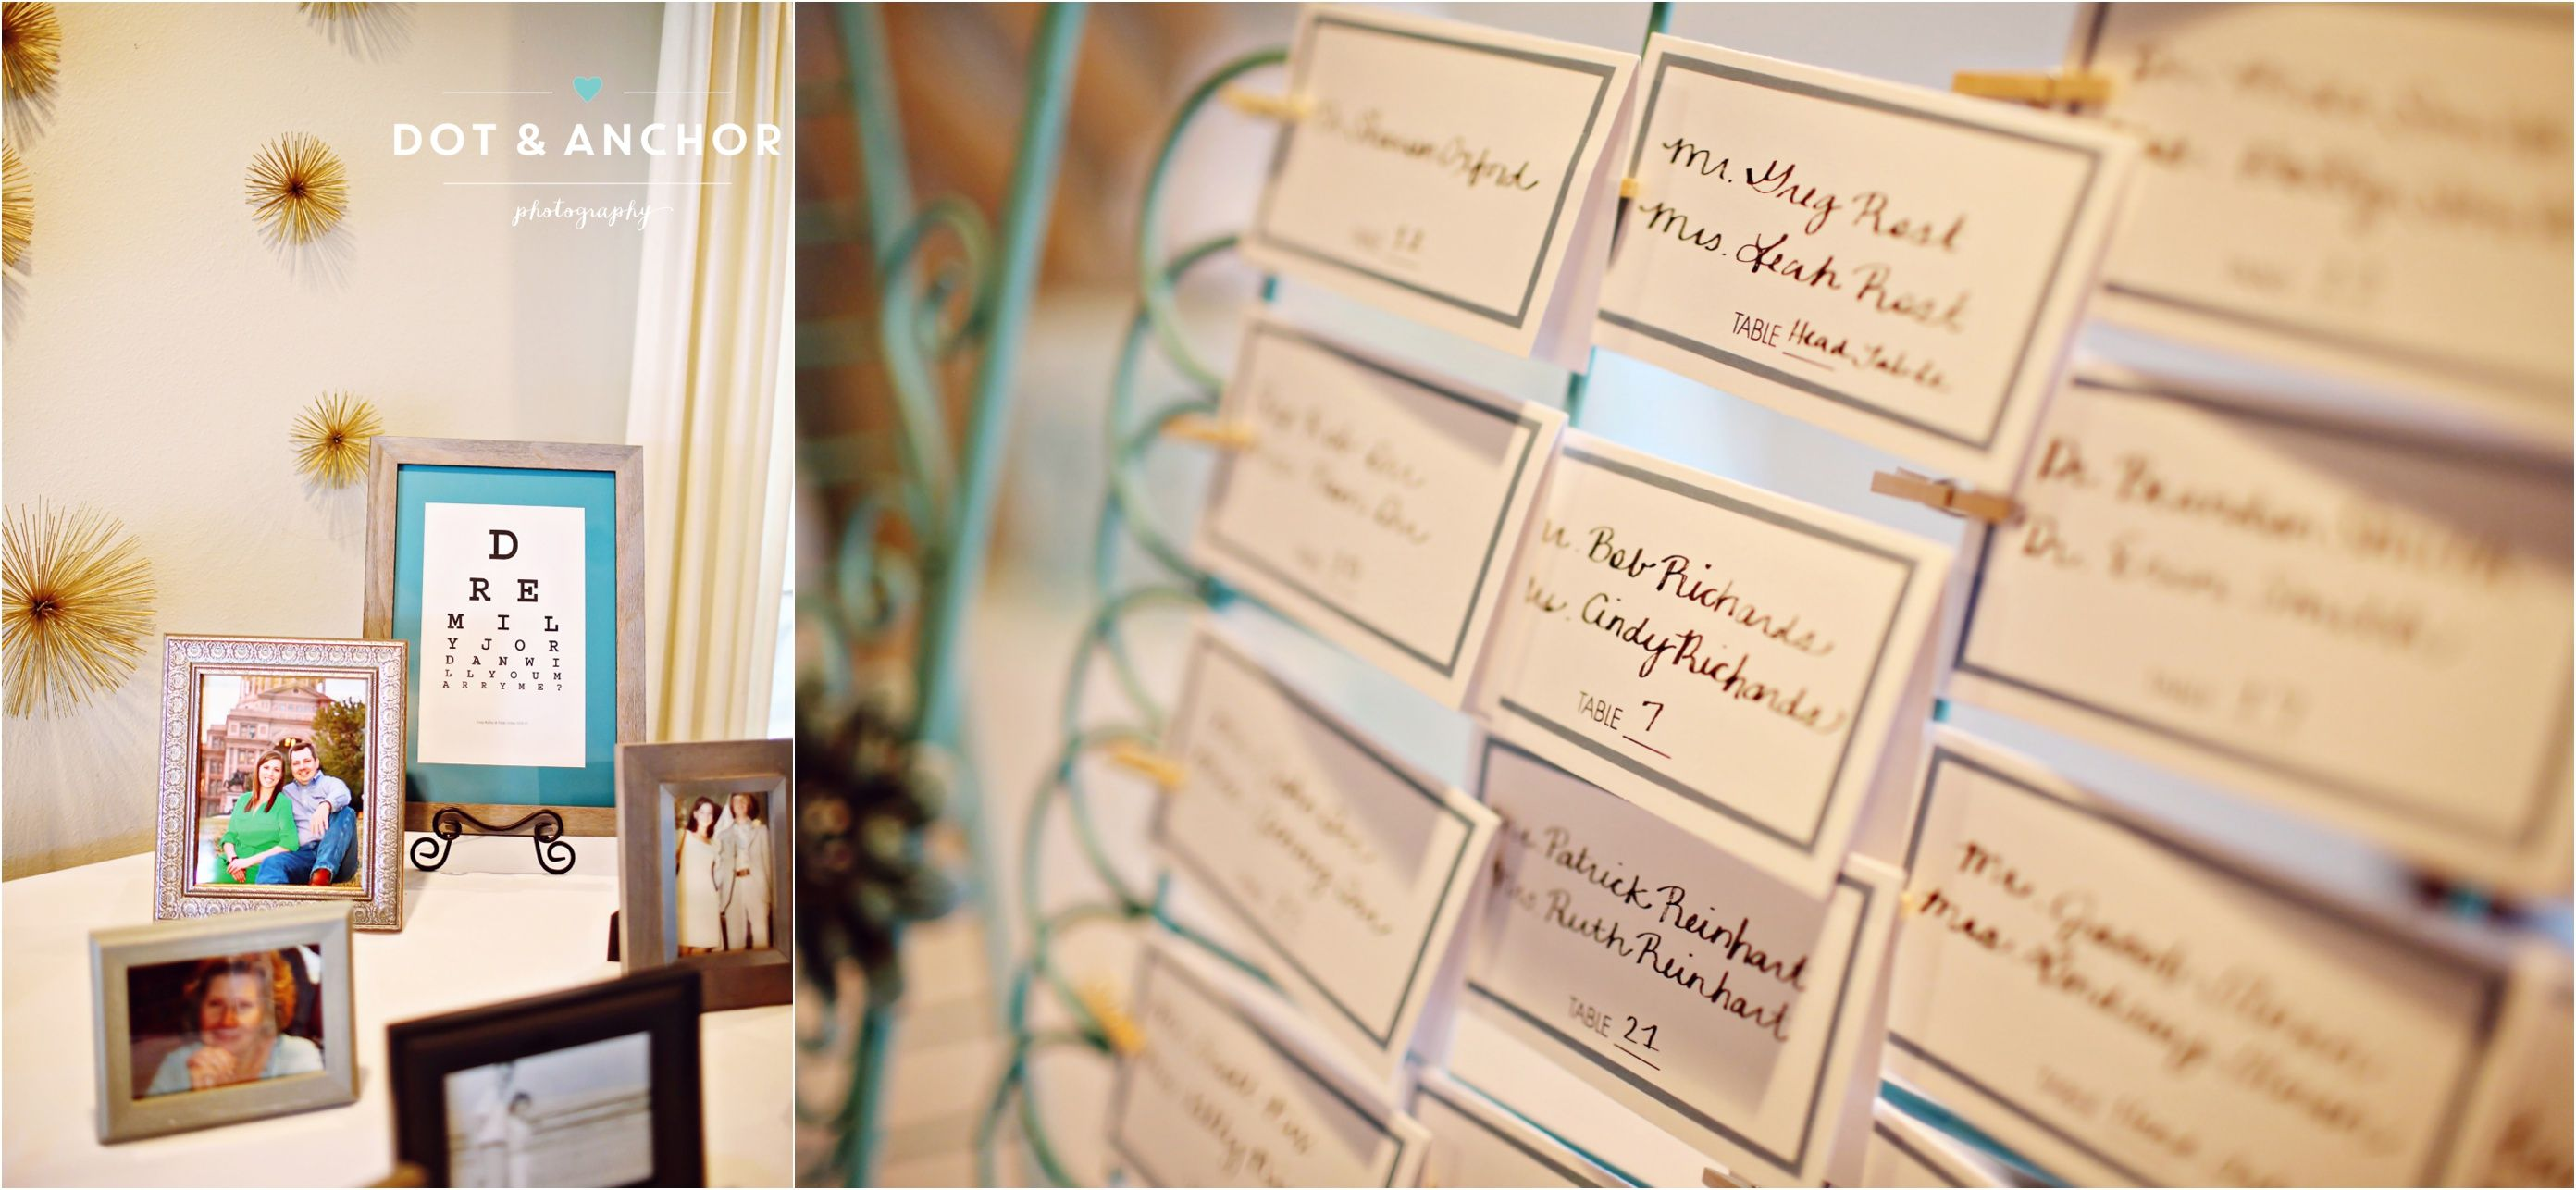 Gorgeous nature inspired, glamorous wedding at Stonehouse Villa in Driftwood, TX. Photography: Dot & Anchor Photography. www.dotandanchor.com